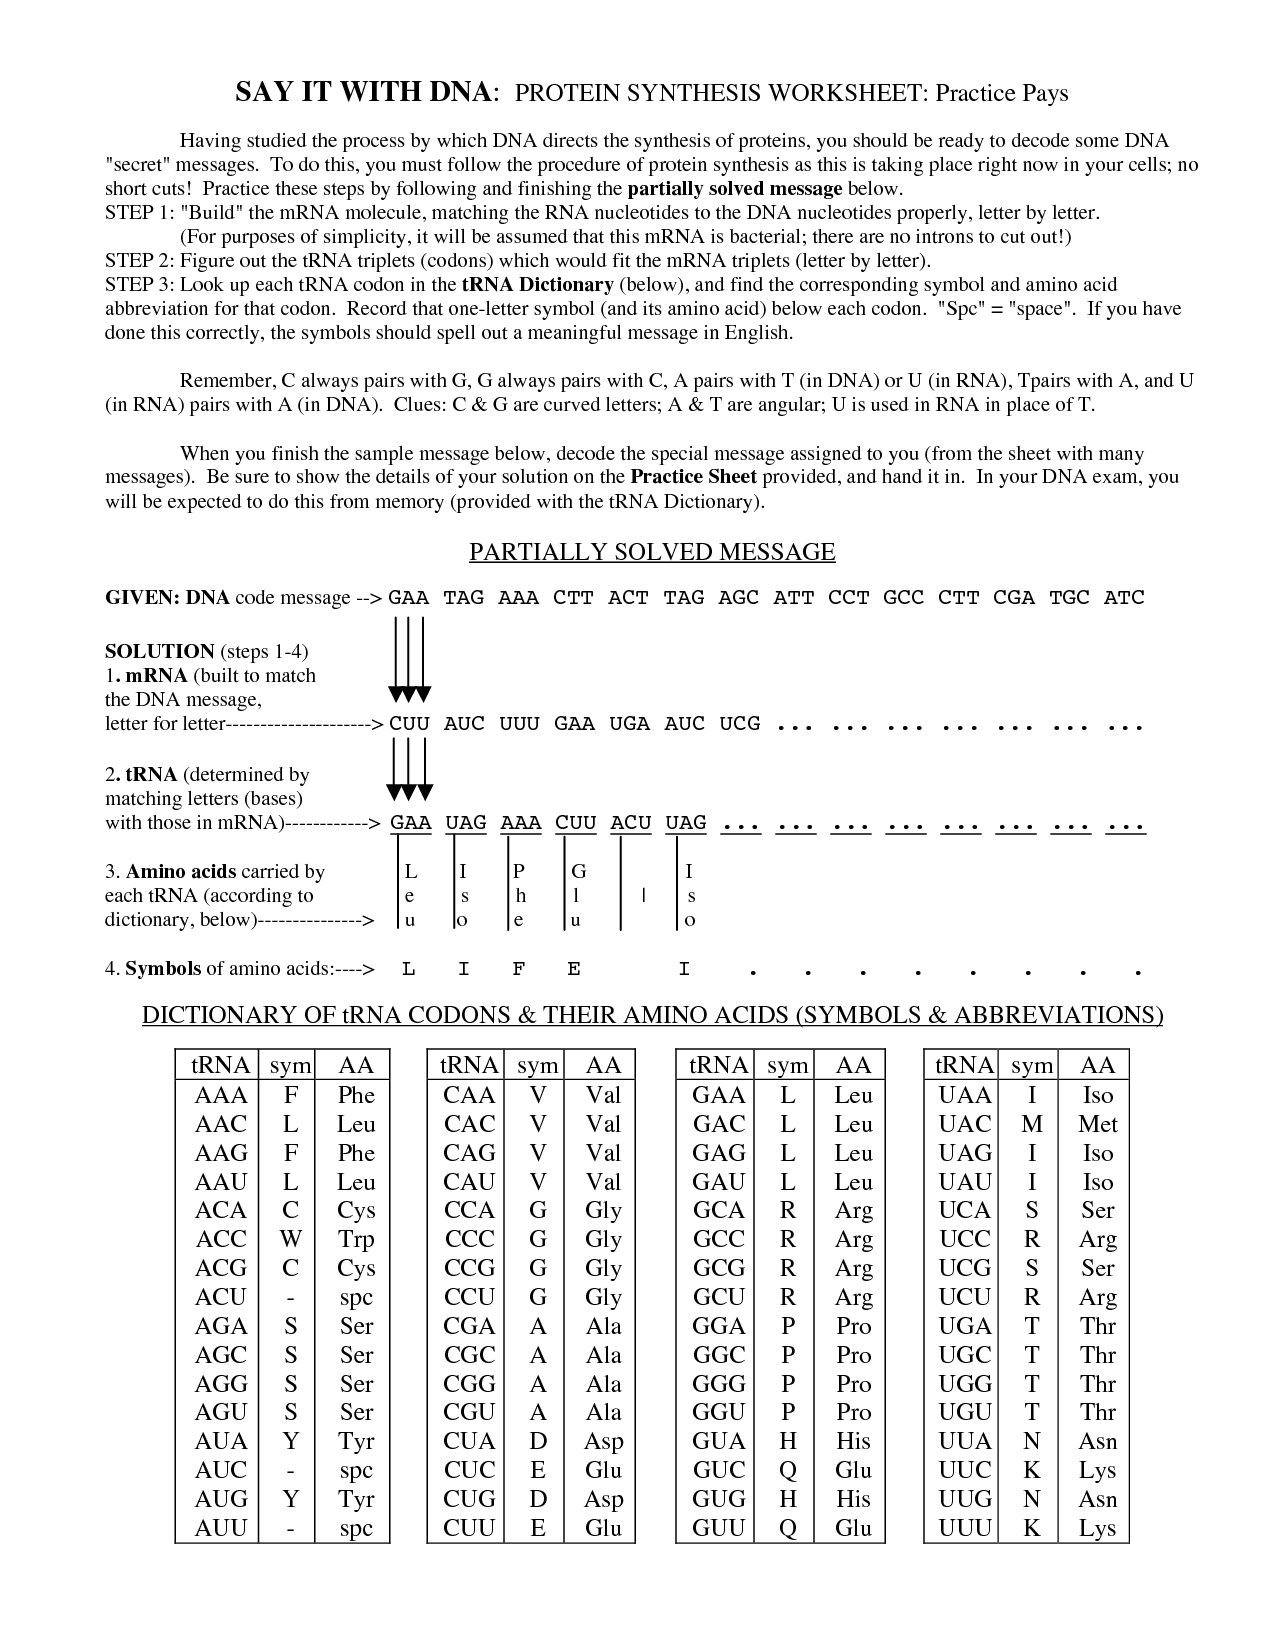 Worksheet On Dna Rna And Protein Synthesis Fatmatoru